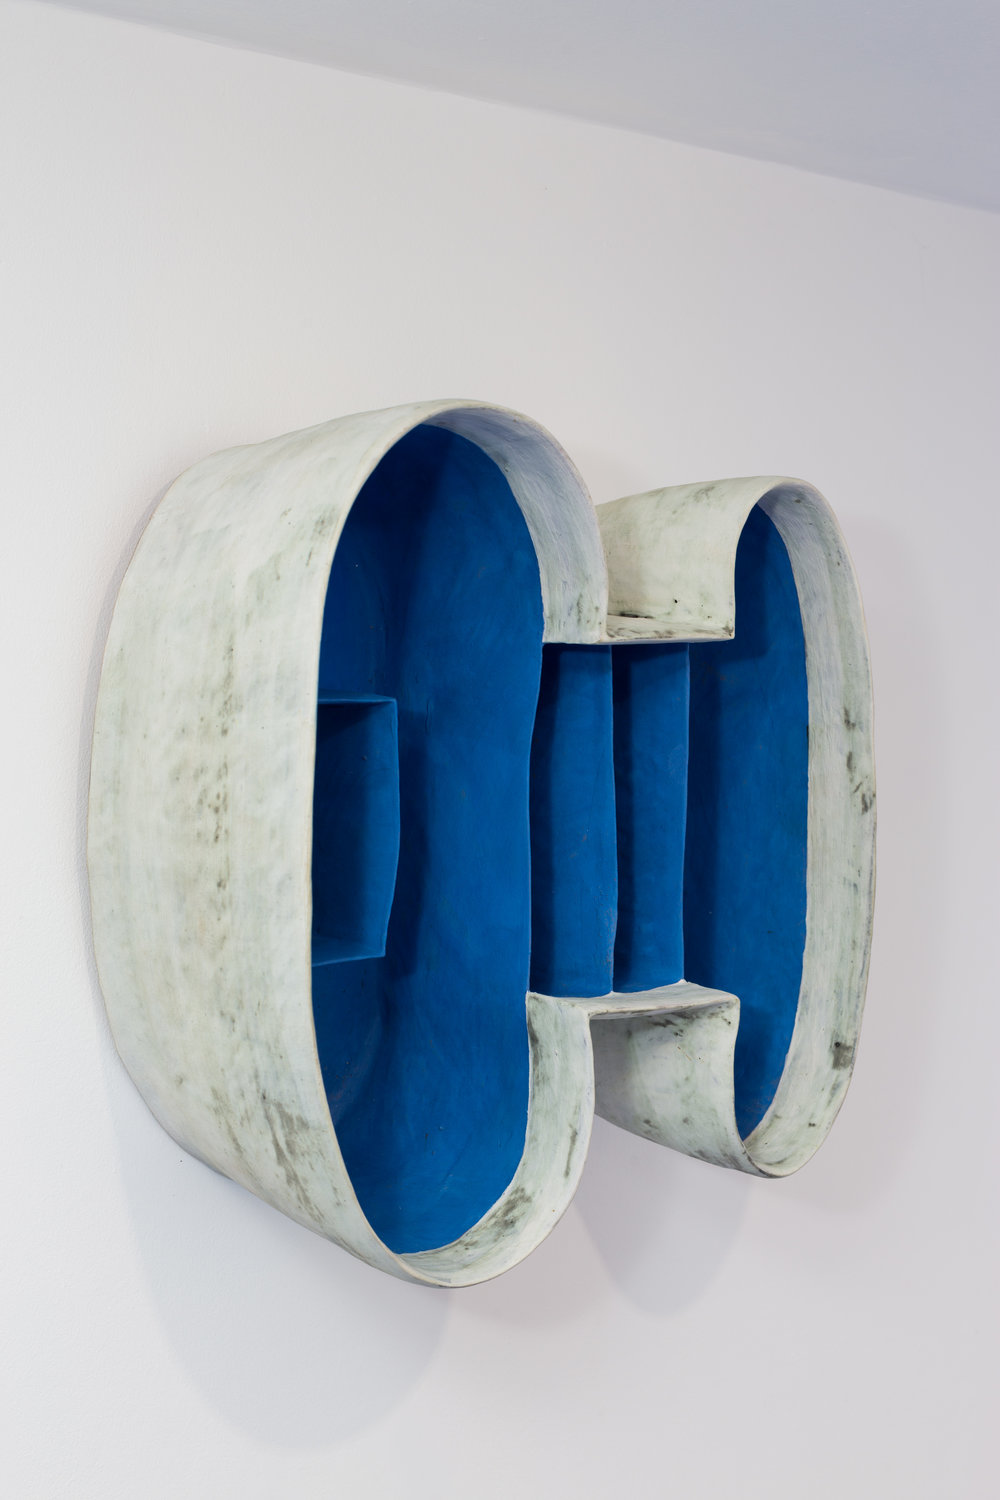 Daphne Corregan,  Blue Spaces , 2013. Grés, 40 x 39 x 16 cm